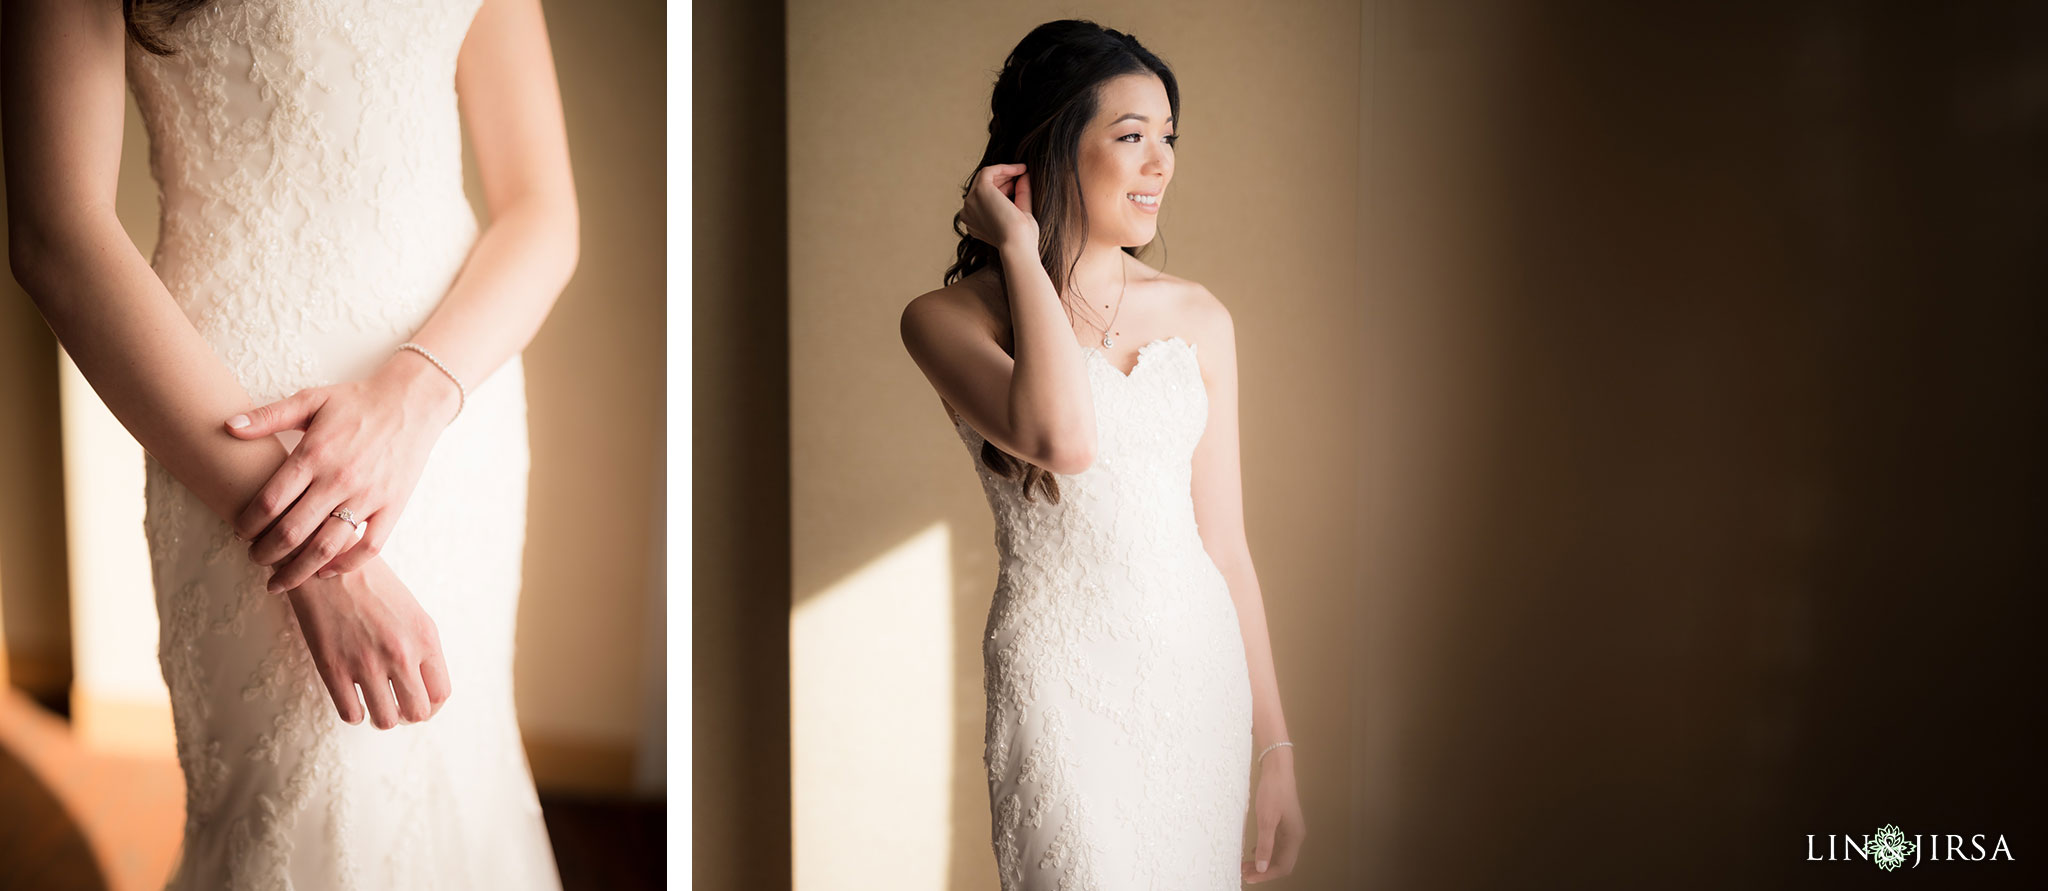 14 hilton costa mesa bride wedding photography